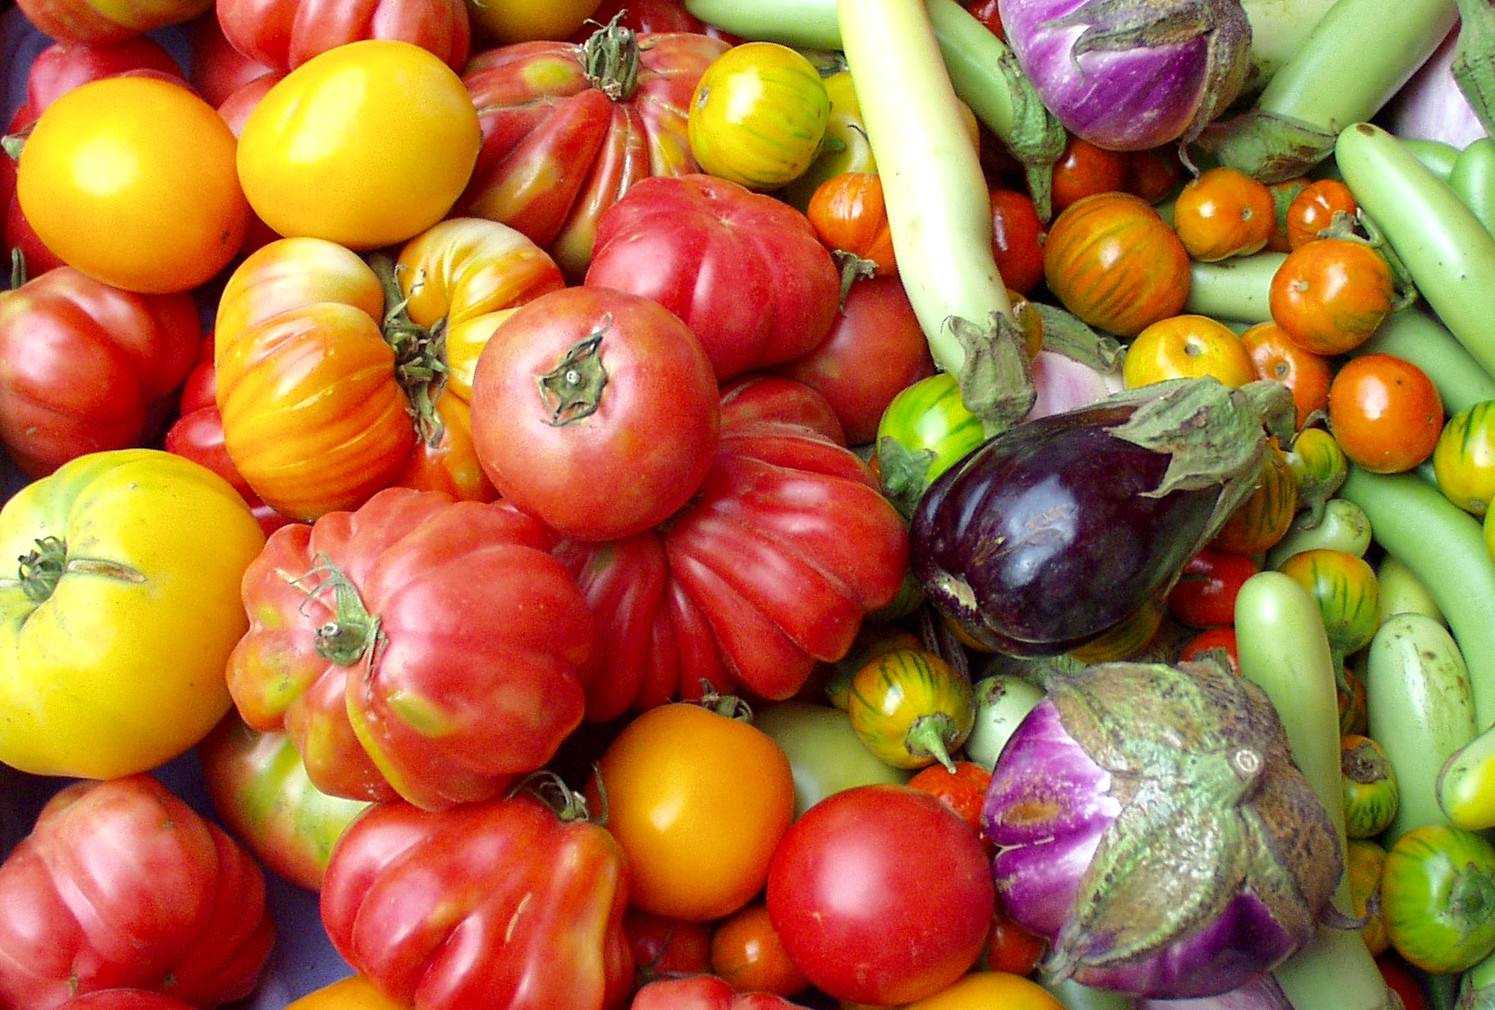 Heirloom tomatoes and eggplant from Tiny's. Photo copyright 2009 by Zachary D. Lyons.